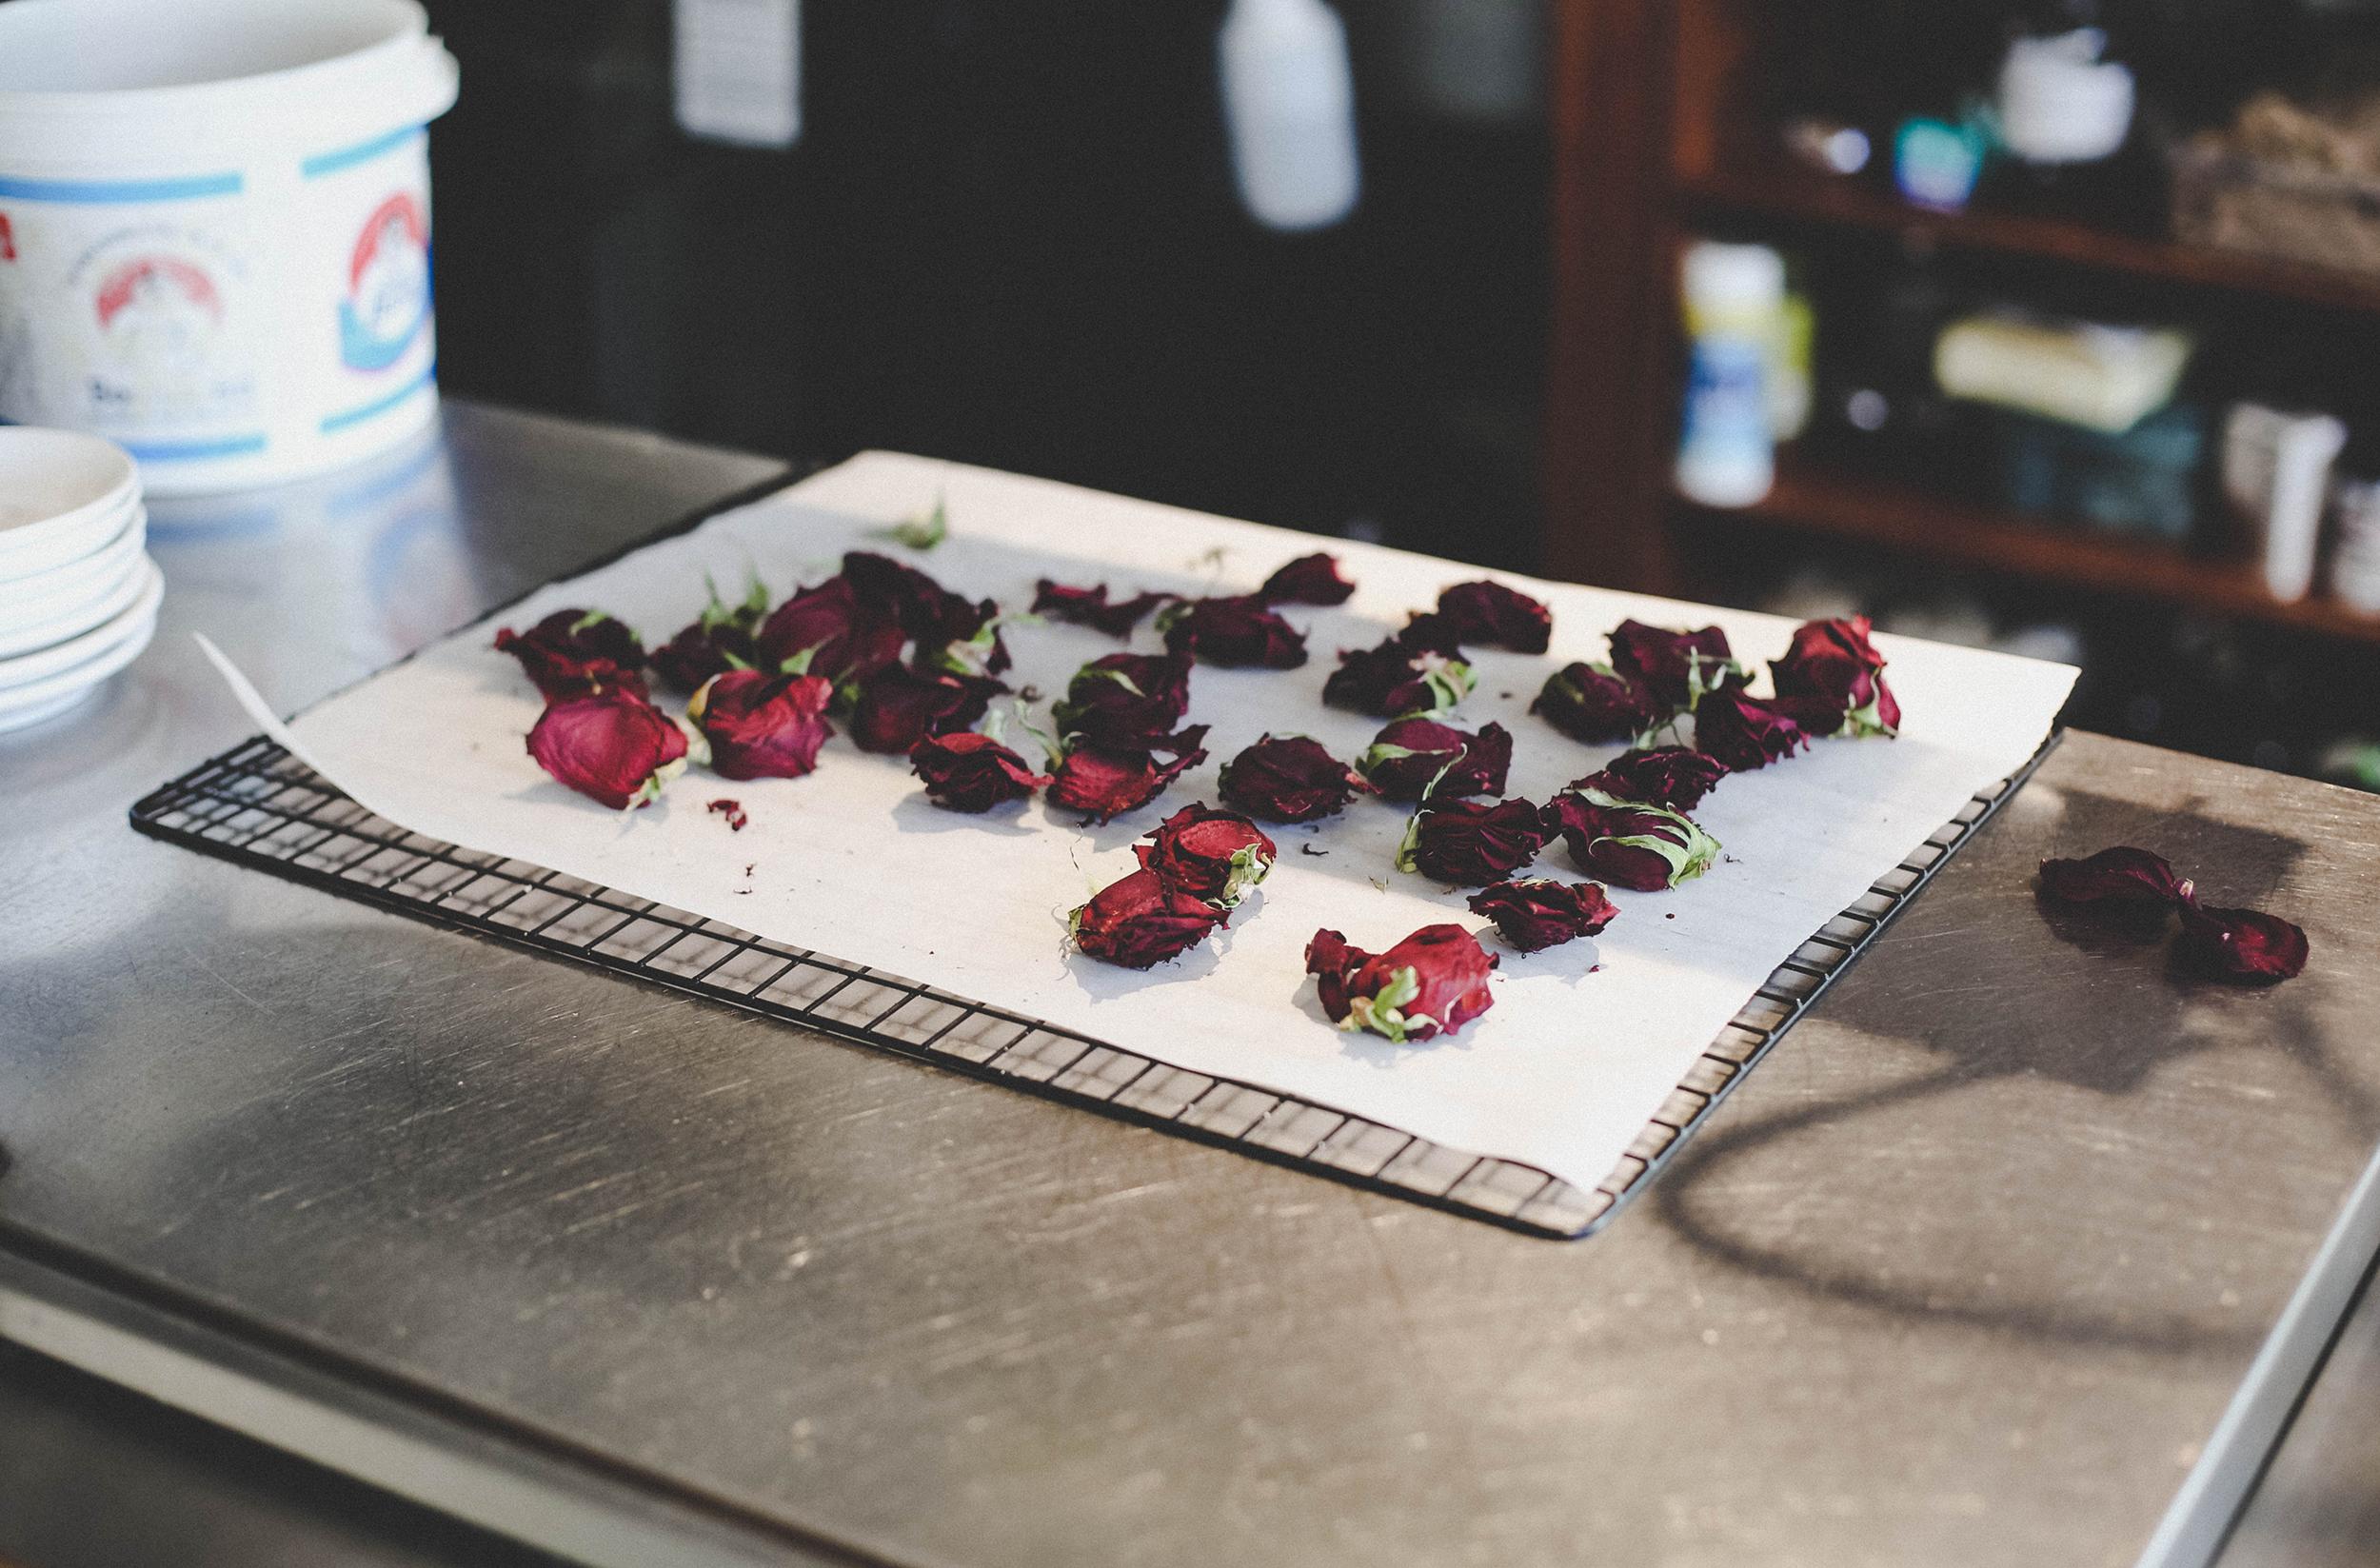 The process of drying roses. The petals are used in cocktails and desserts.